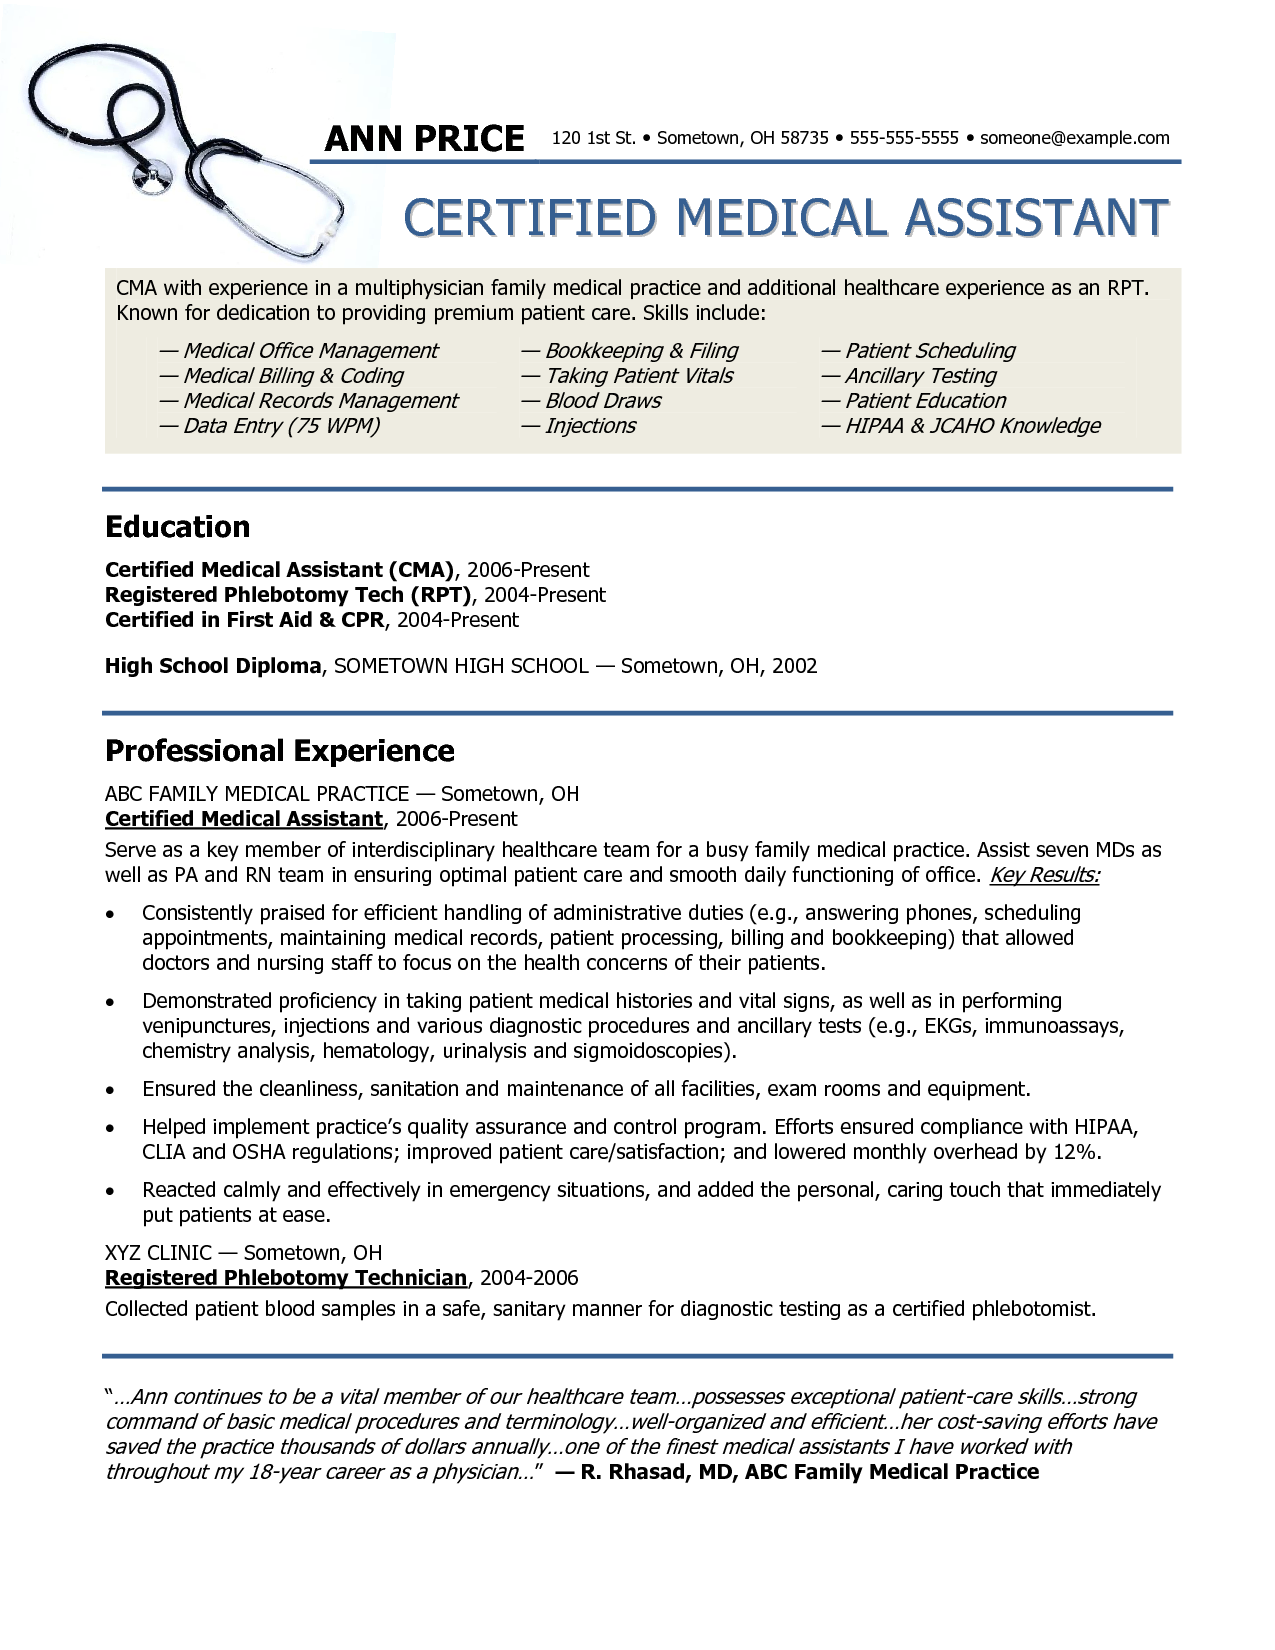 resume examples example of medical assistant resume regular medical assistant - Medical Assistant Resumes Templates